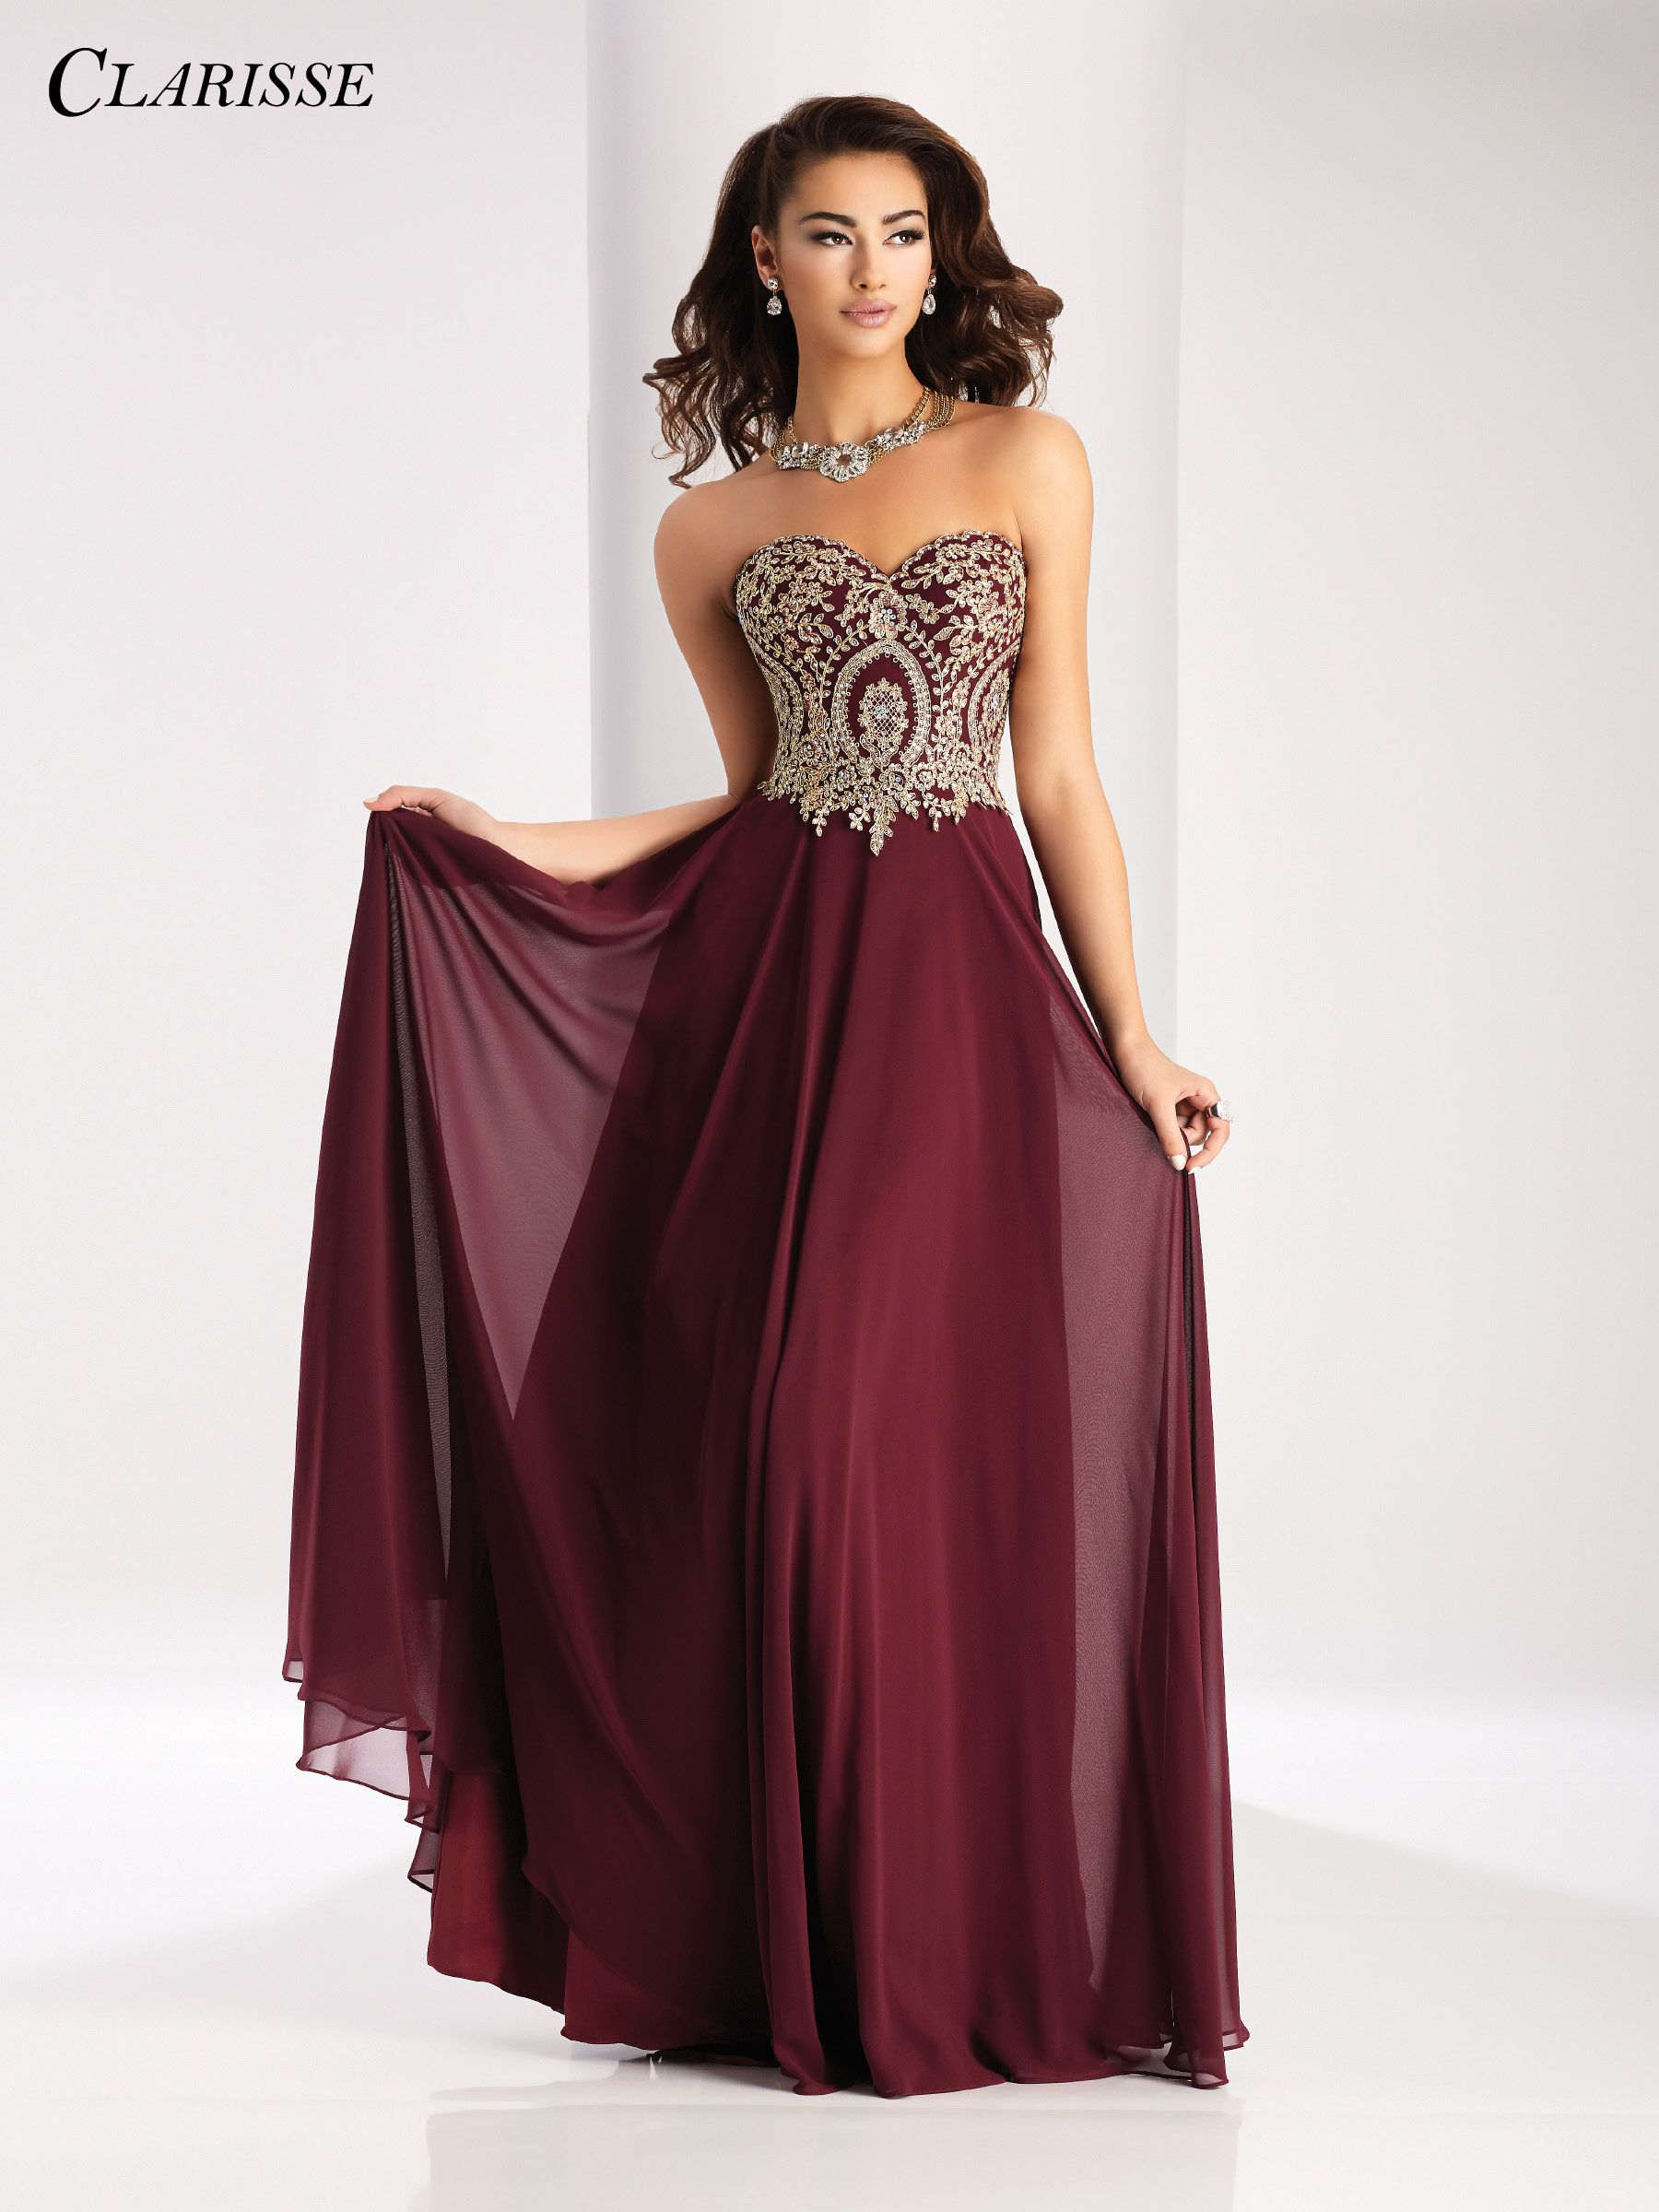 Clarisse prom dress stunning lace appliqué a sweetheart